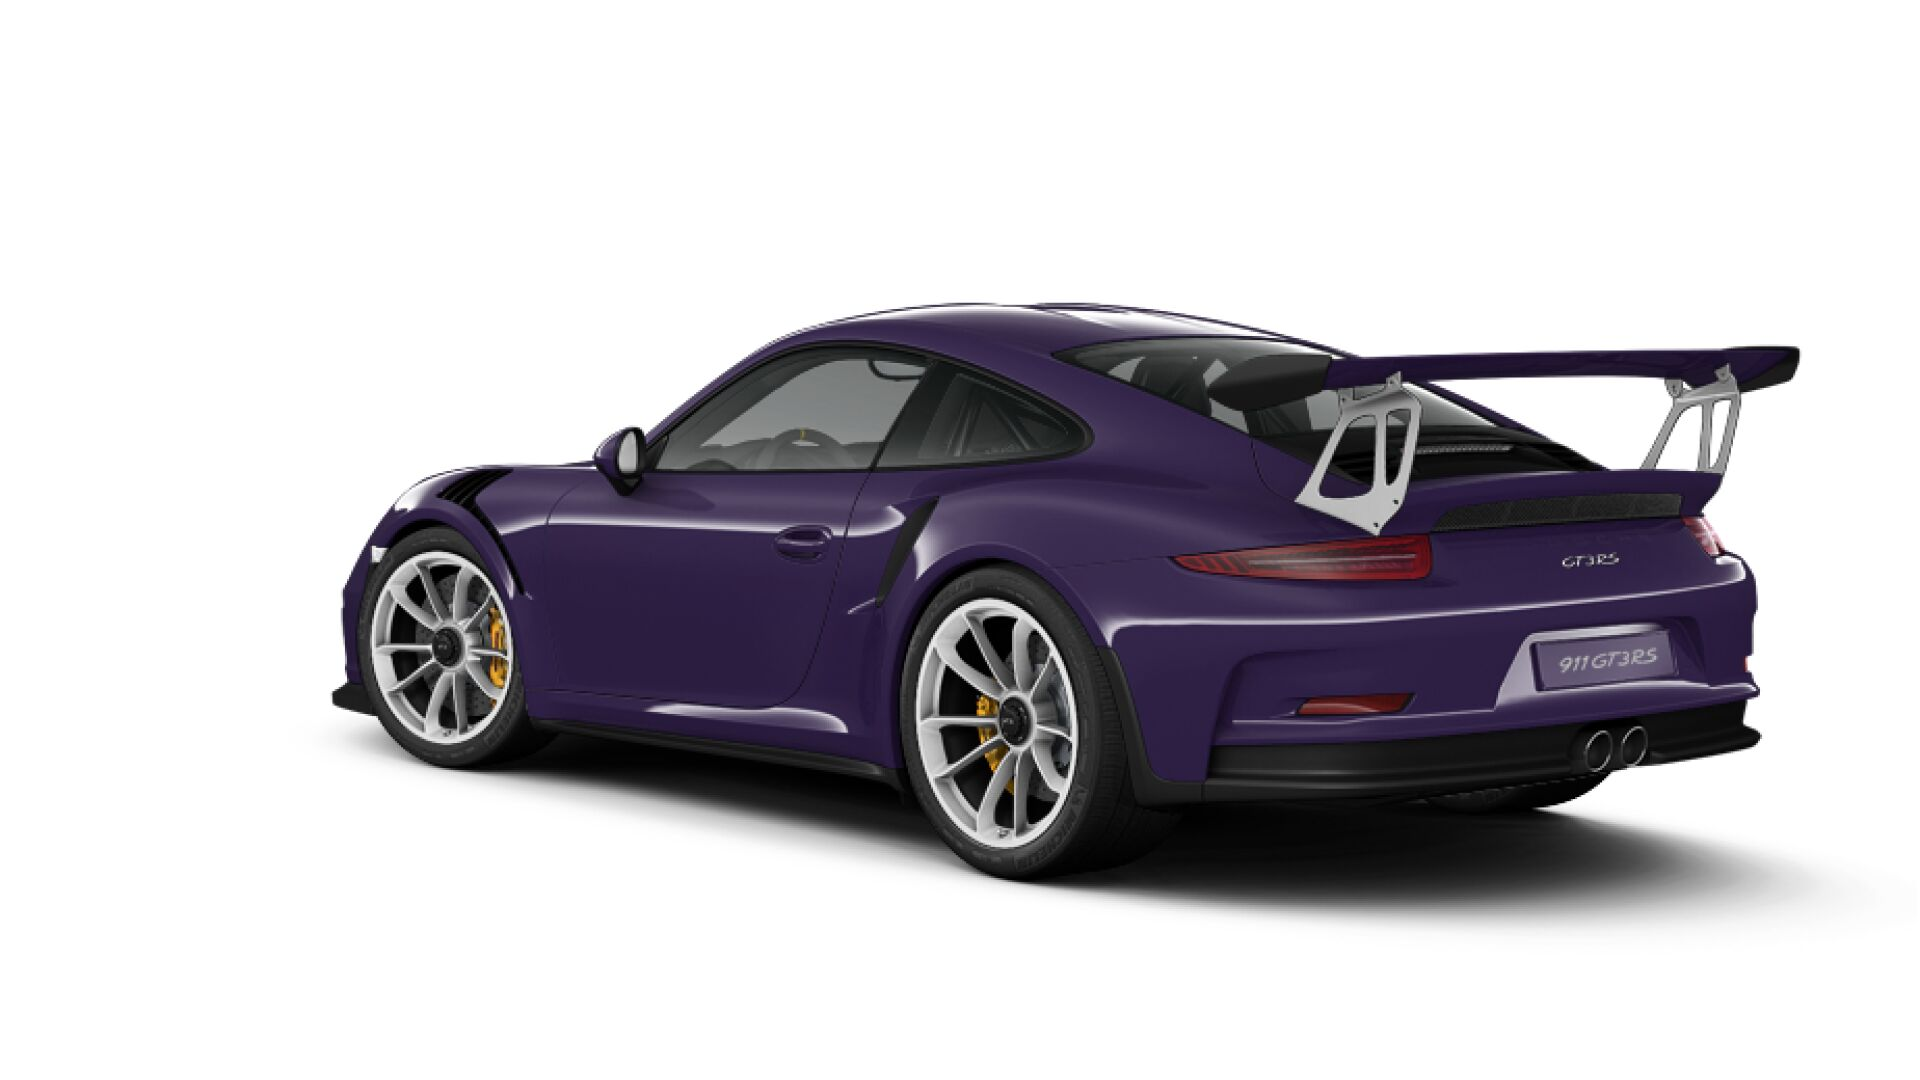 porsche 991 gt3 rs uk price trends update jan 2017 porsche valuations. Black Bedroom Furniture Sets. Home Design Ideas